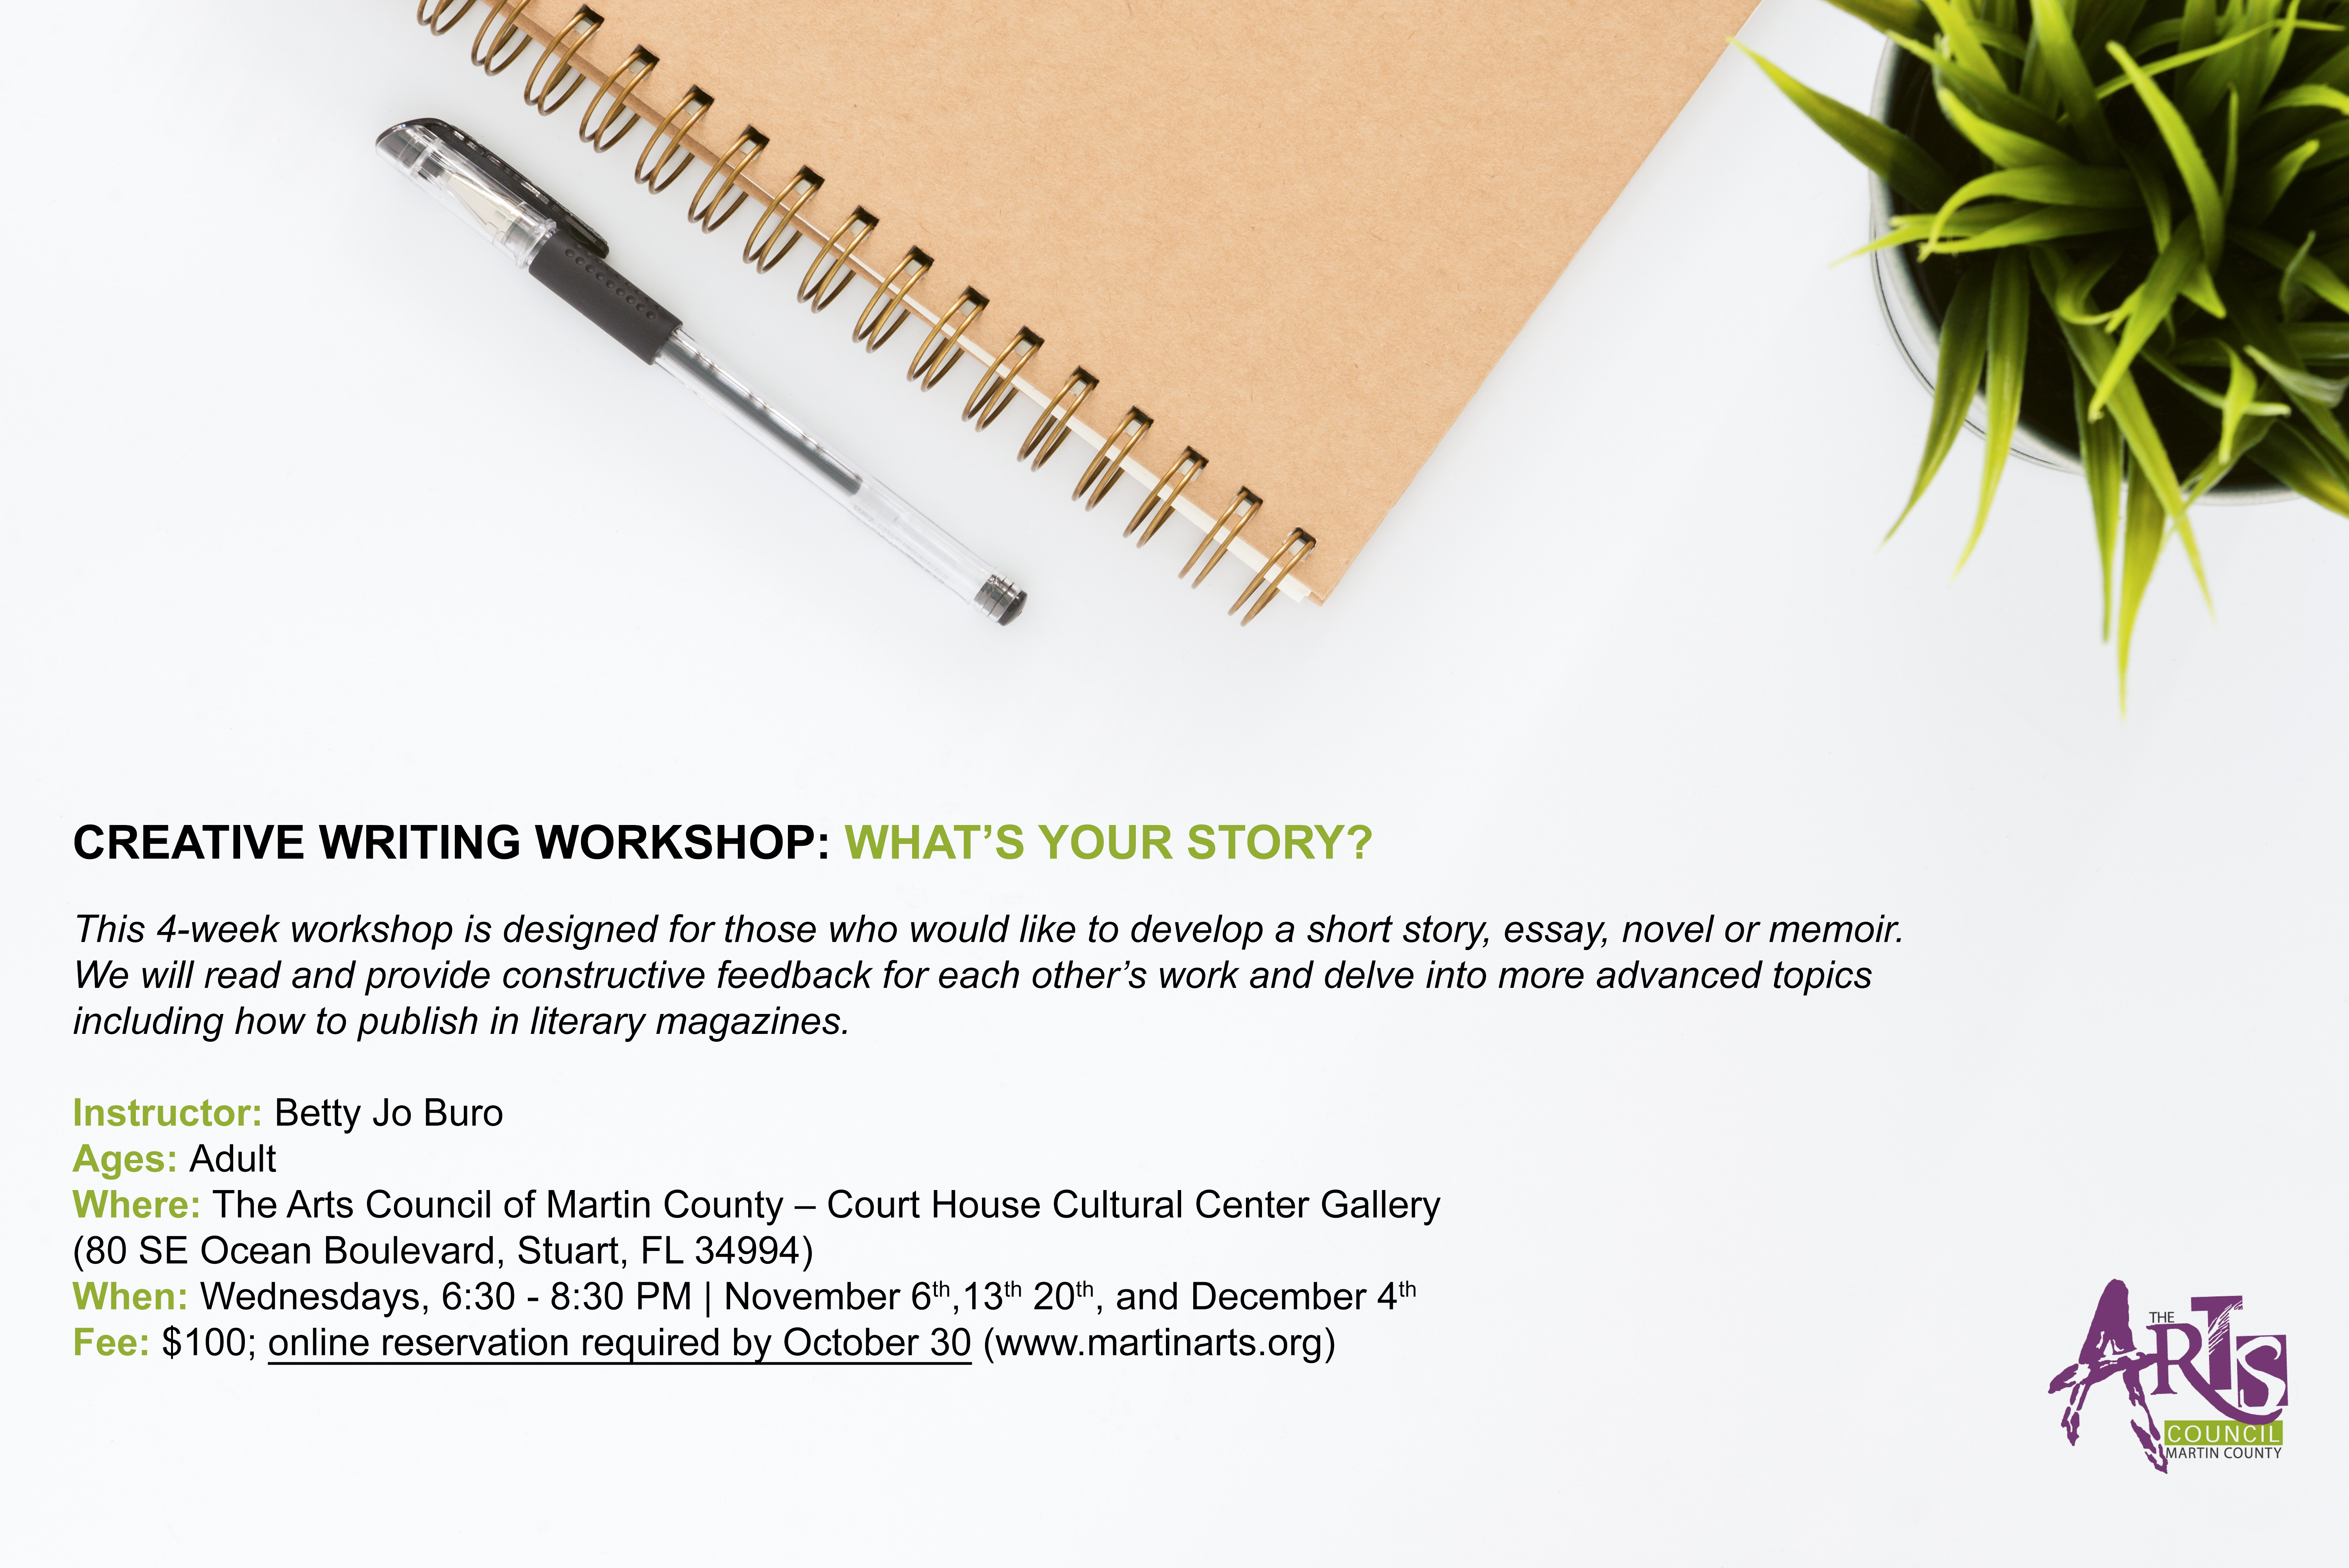 Creative Writing Workshop: What's Your Story?